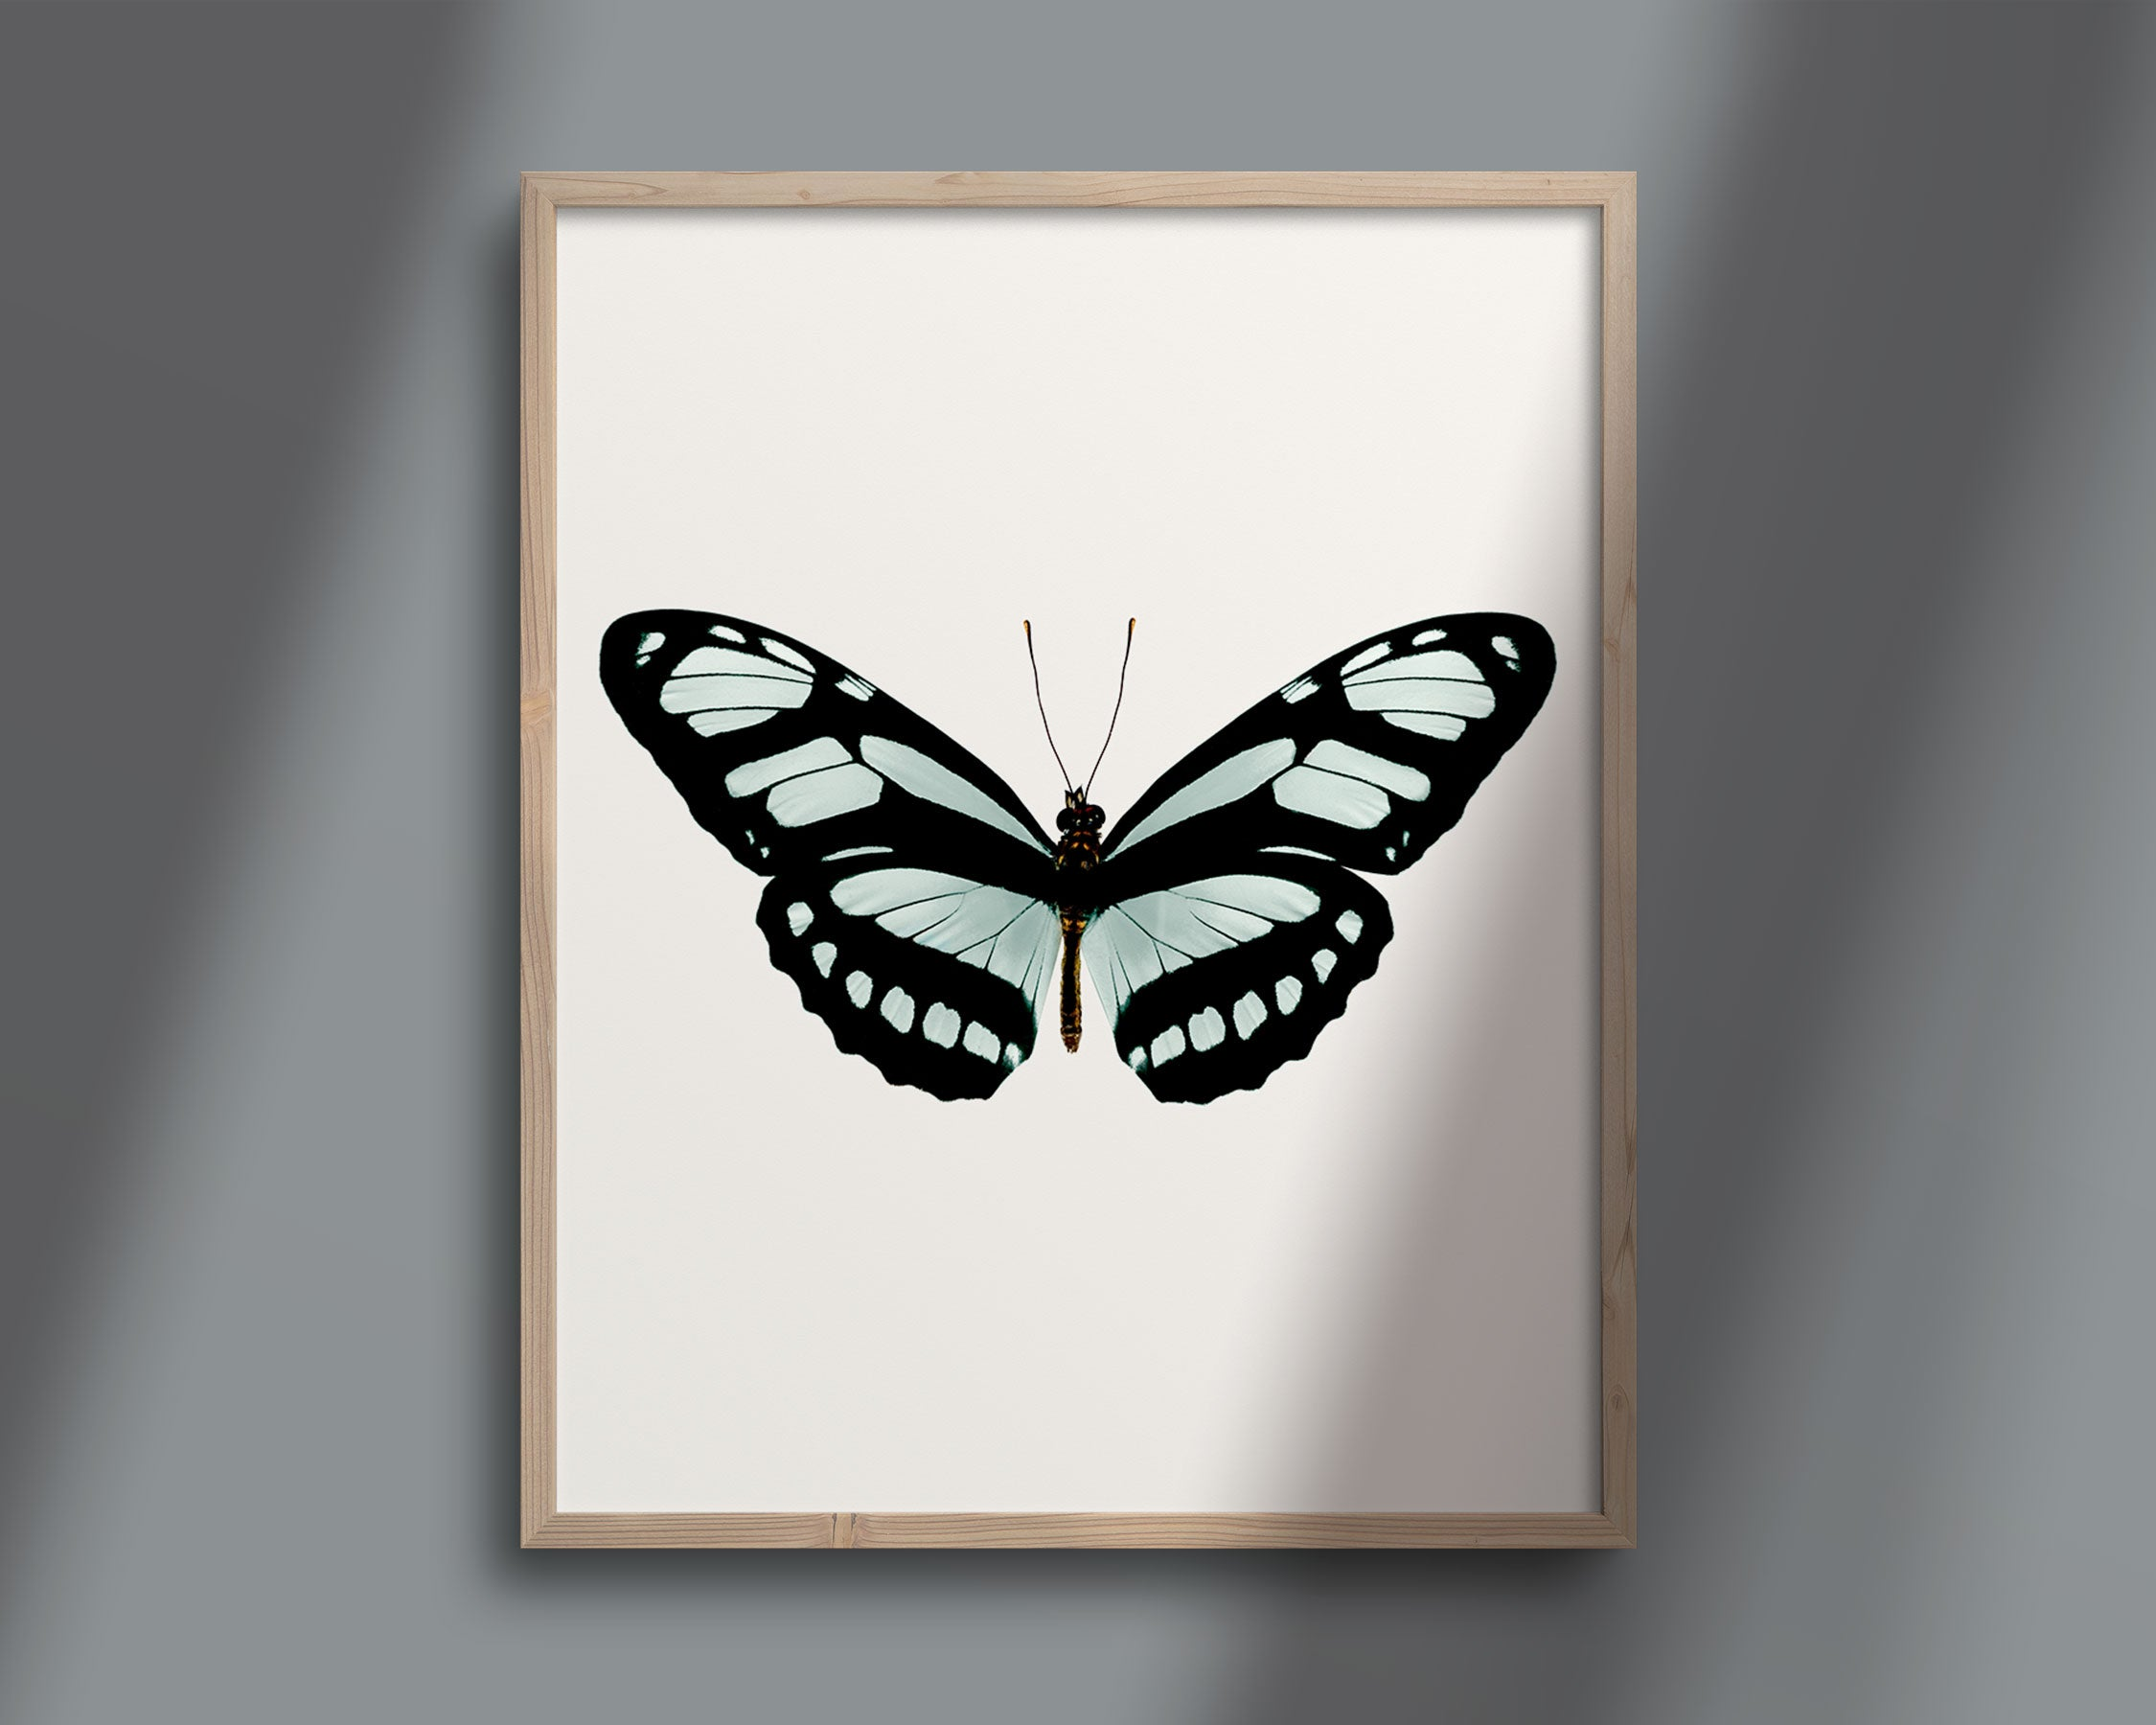 Butterfly Photo No. 15 - Philaertia Dido - Bamboo Page Butterfly Print